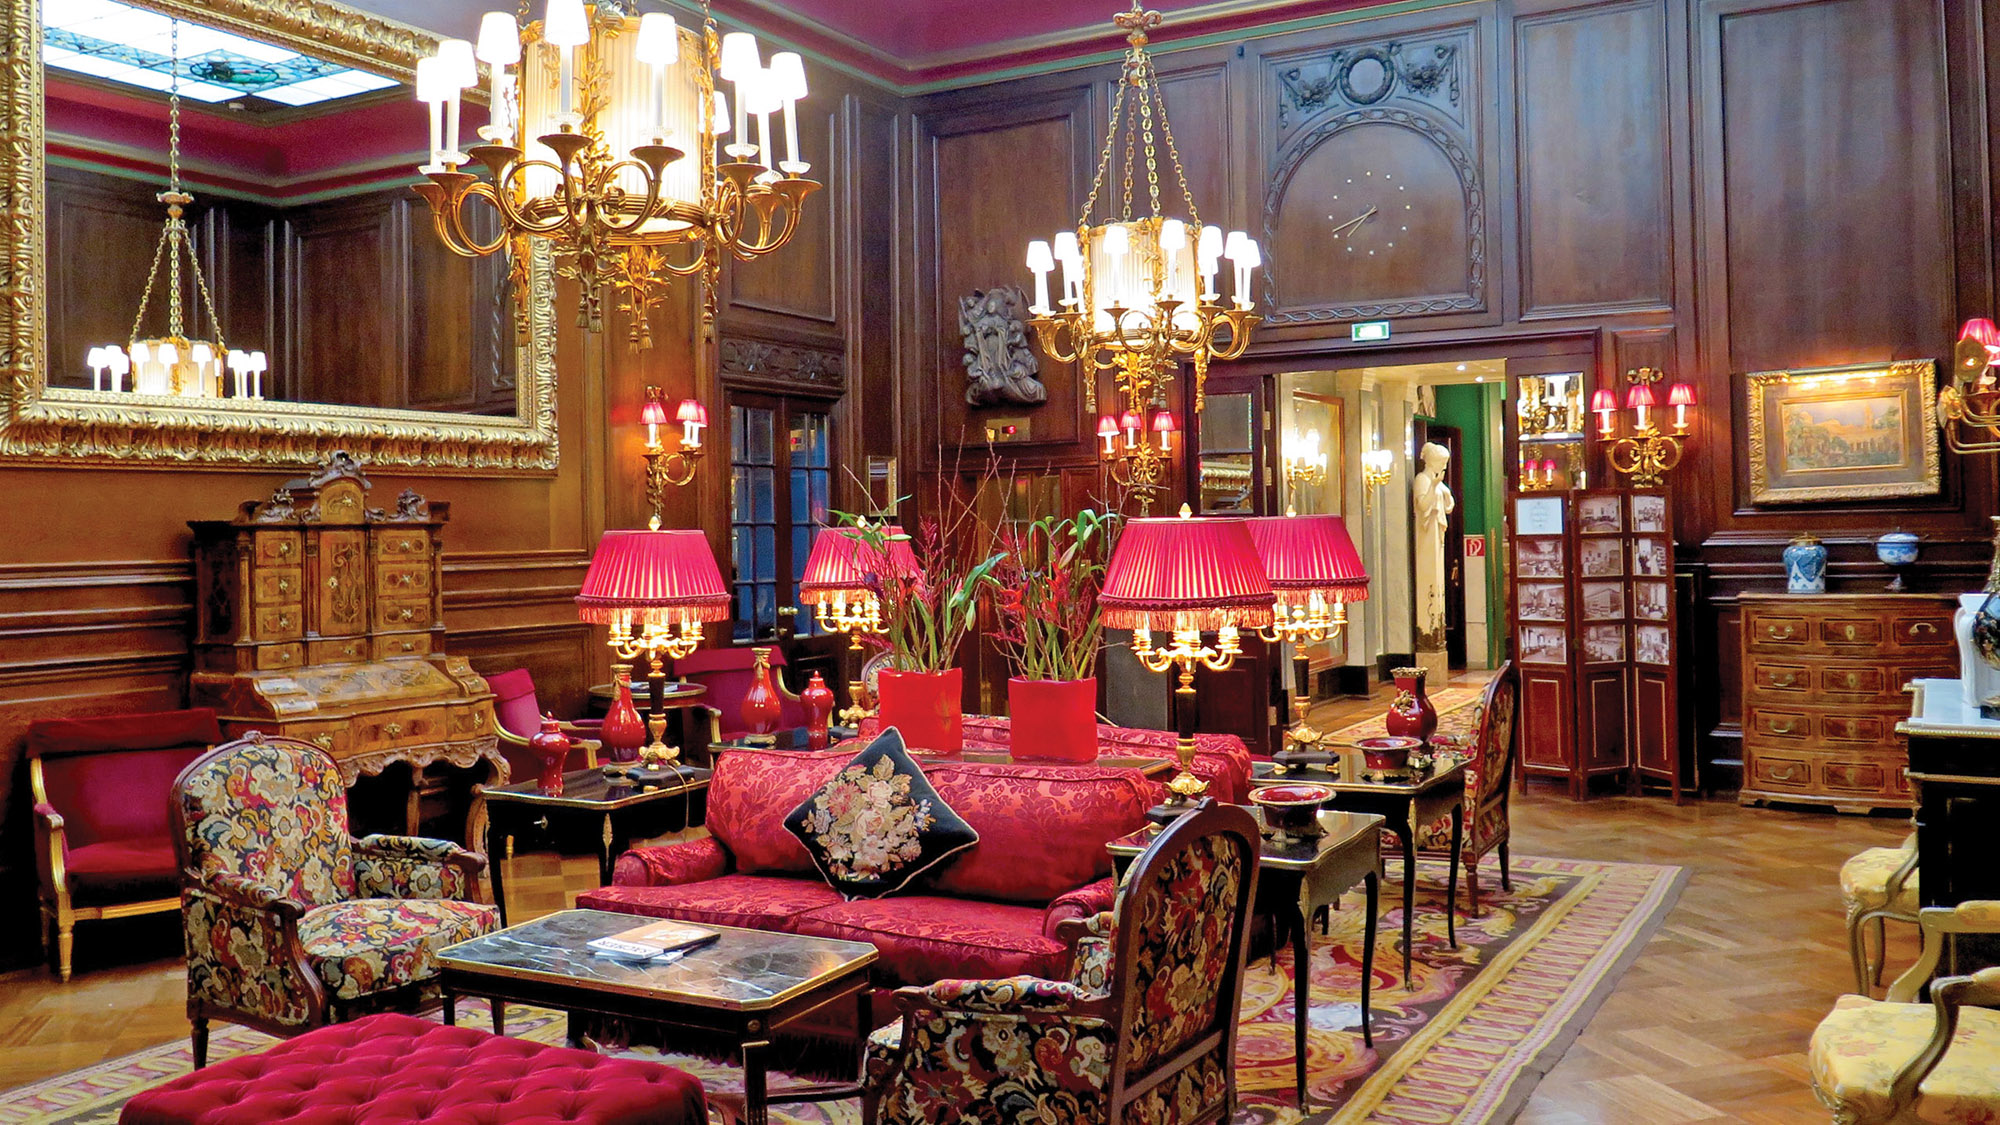 Viennas Hotel Sacher Slice of the sweet life Travel Weekly